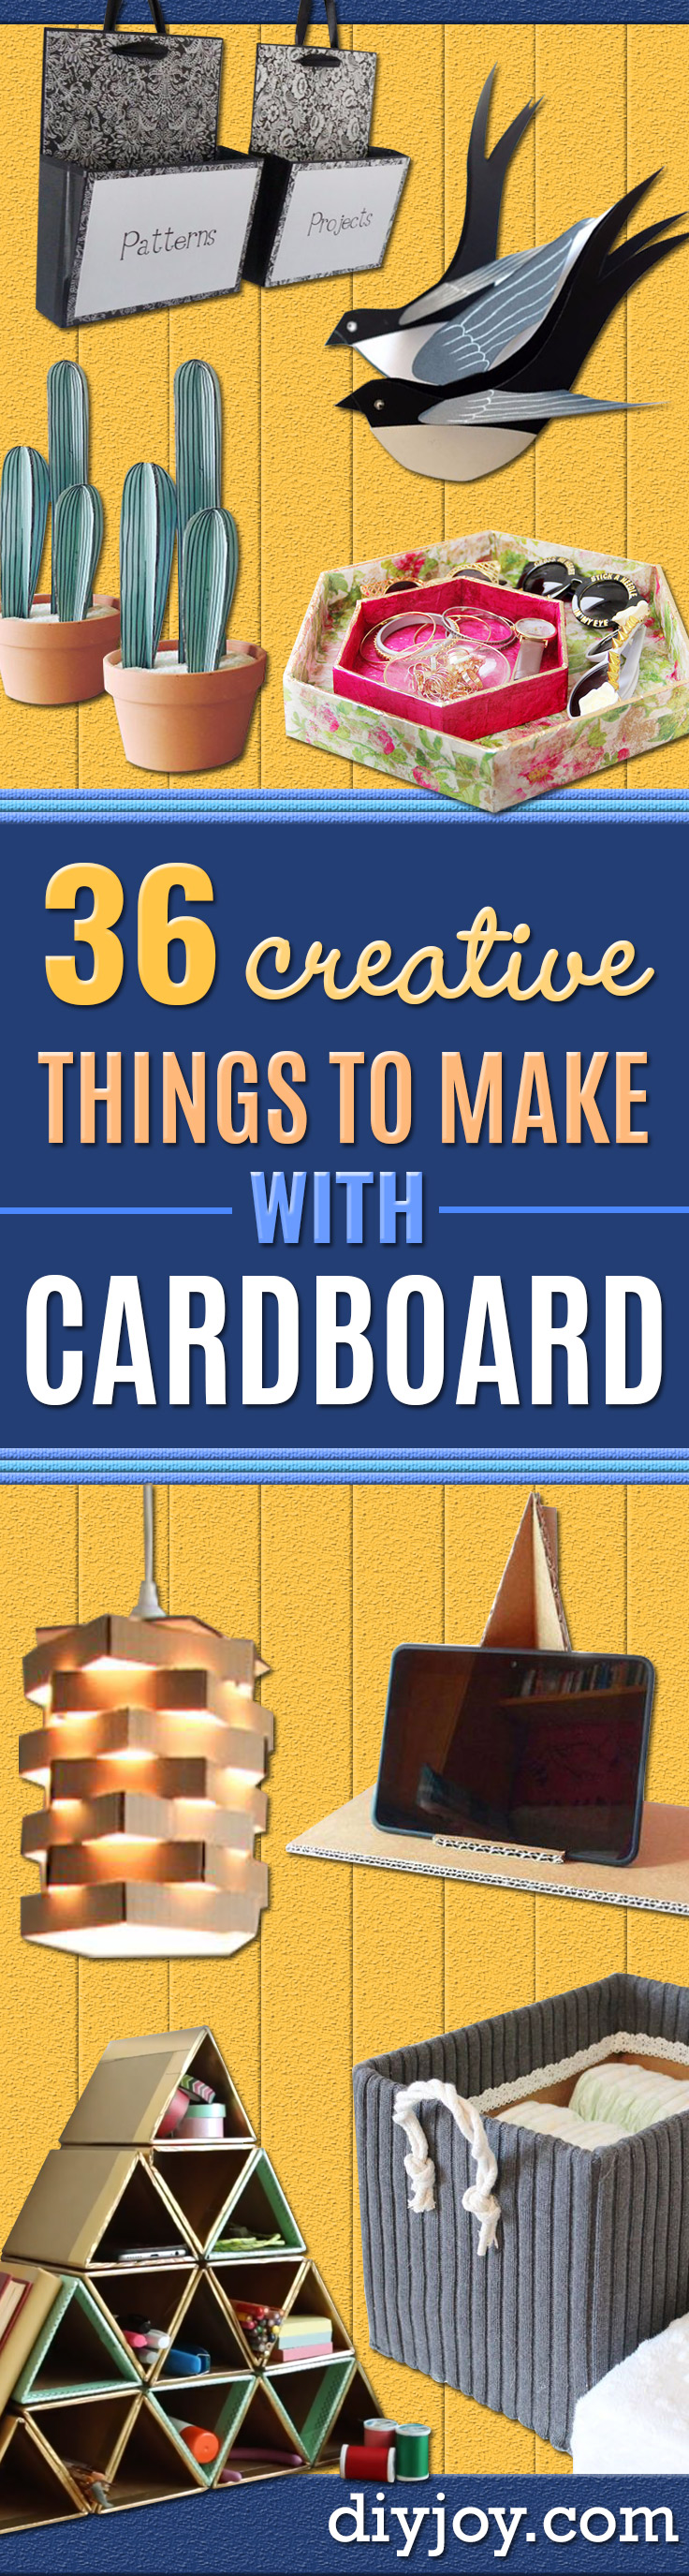 DIY Ideas With Cardboard - How To Make Room Decor Crafts for Kids - Easy and Crafty Storage Ideas For Room - Toilet Paper Roll Projects Tutorials - Fun Furniture Ideas with Cardboard - Cheap, Quick and Easy Wall Decorations